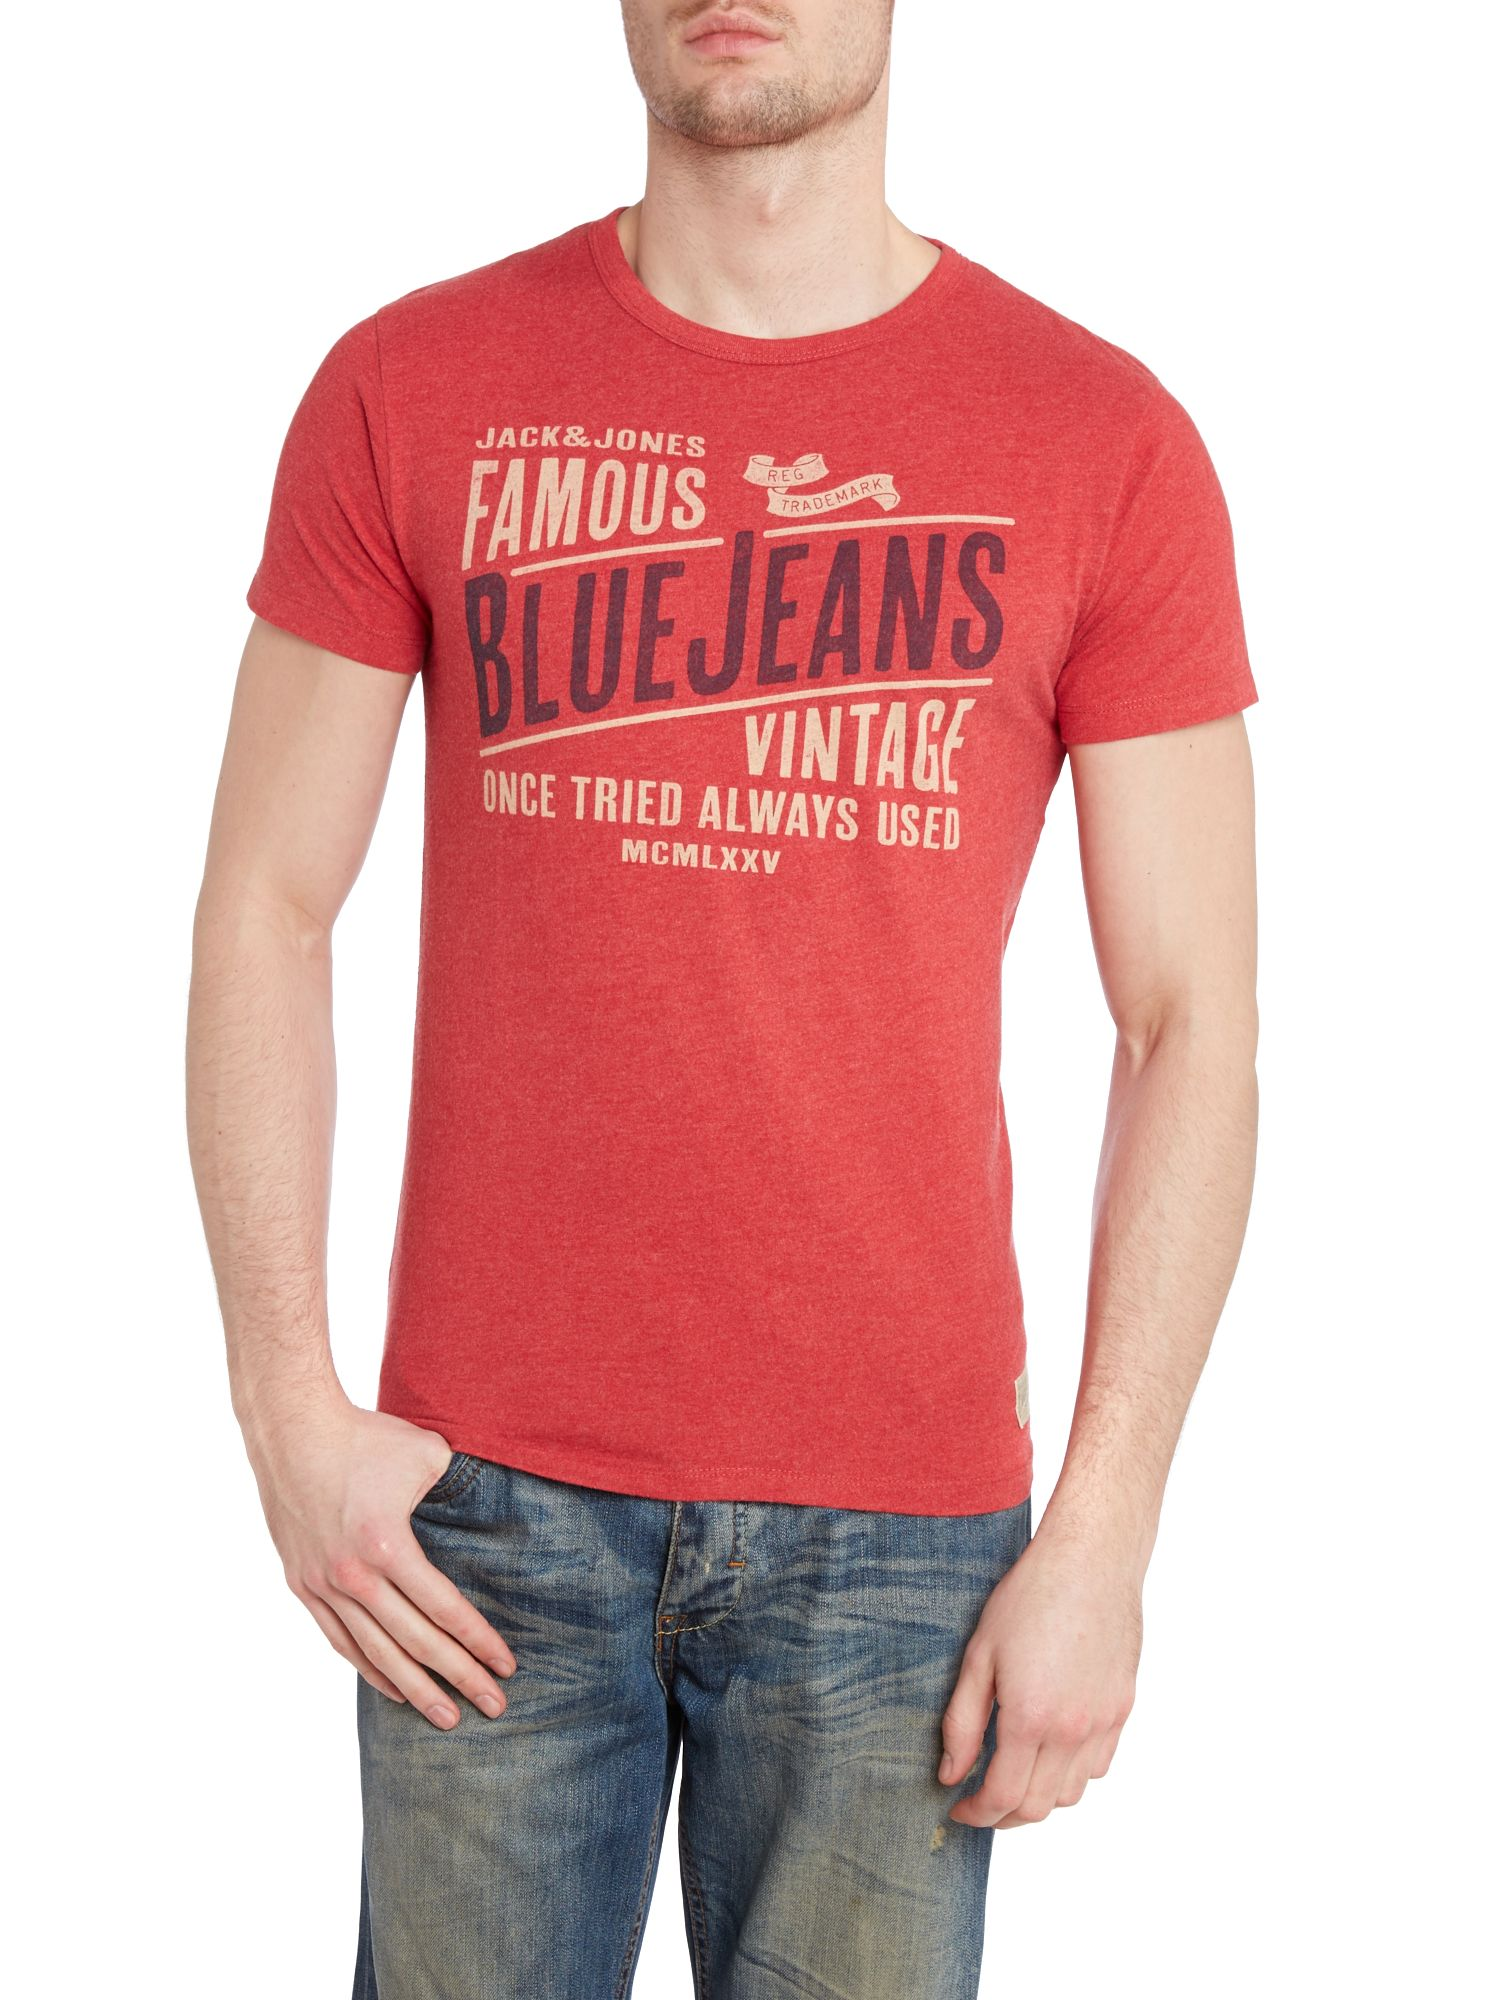 Blue jeans graphic t-shirt